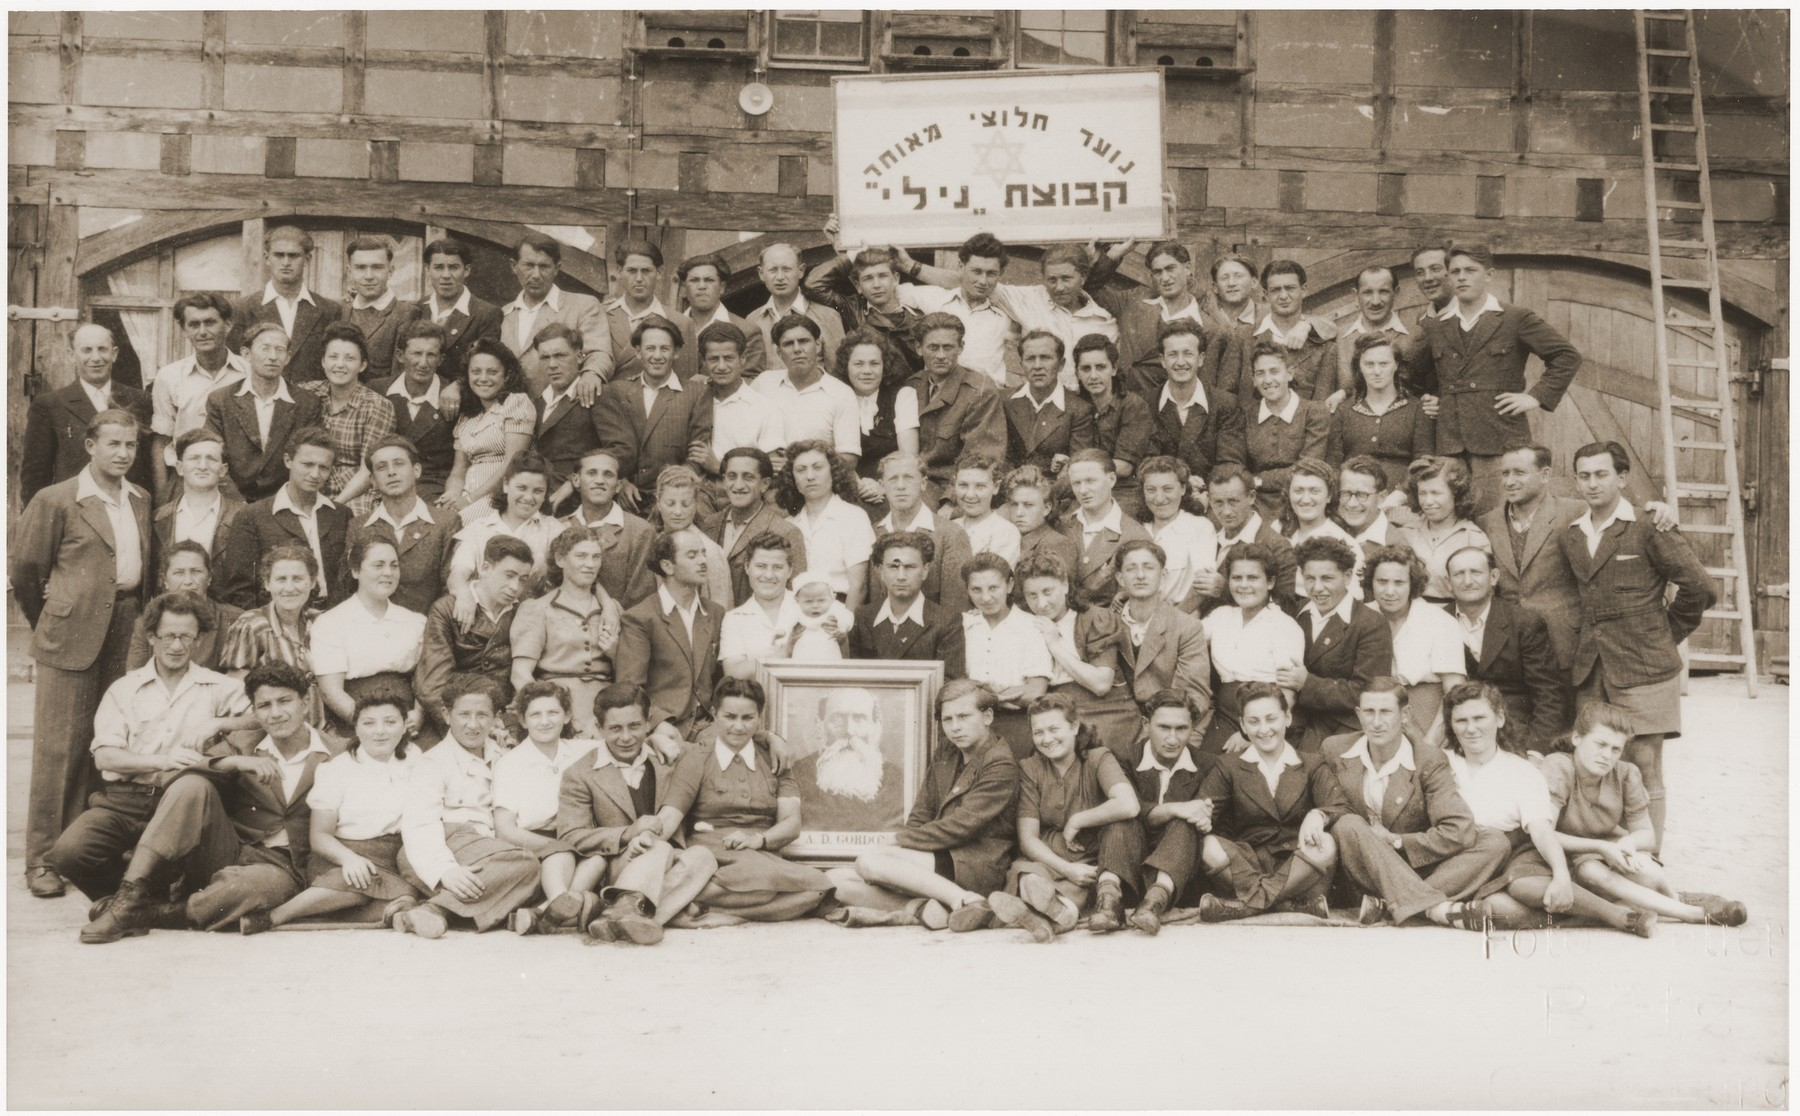 Group portrait of members of the Kibbutz Nili hachshara (Zionist collective) in Pleikershof, Germany  Those in the front row hold a protrait of labor Zionist idealogue A. D. Gordon.  Sitting directly behind the portrait are Noach and Sara (Feldberg) Miedzinski with their infant daughter Nili Ruchana.